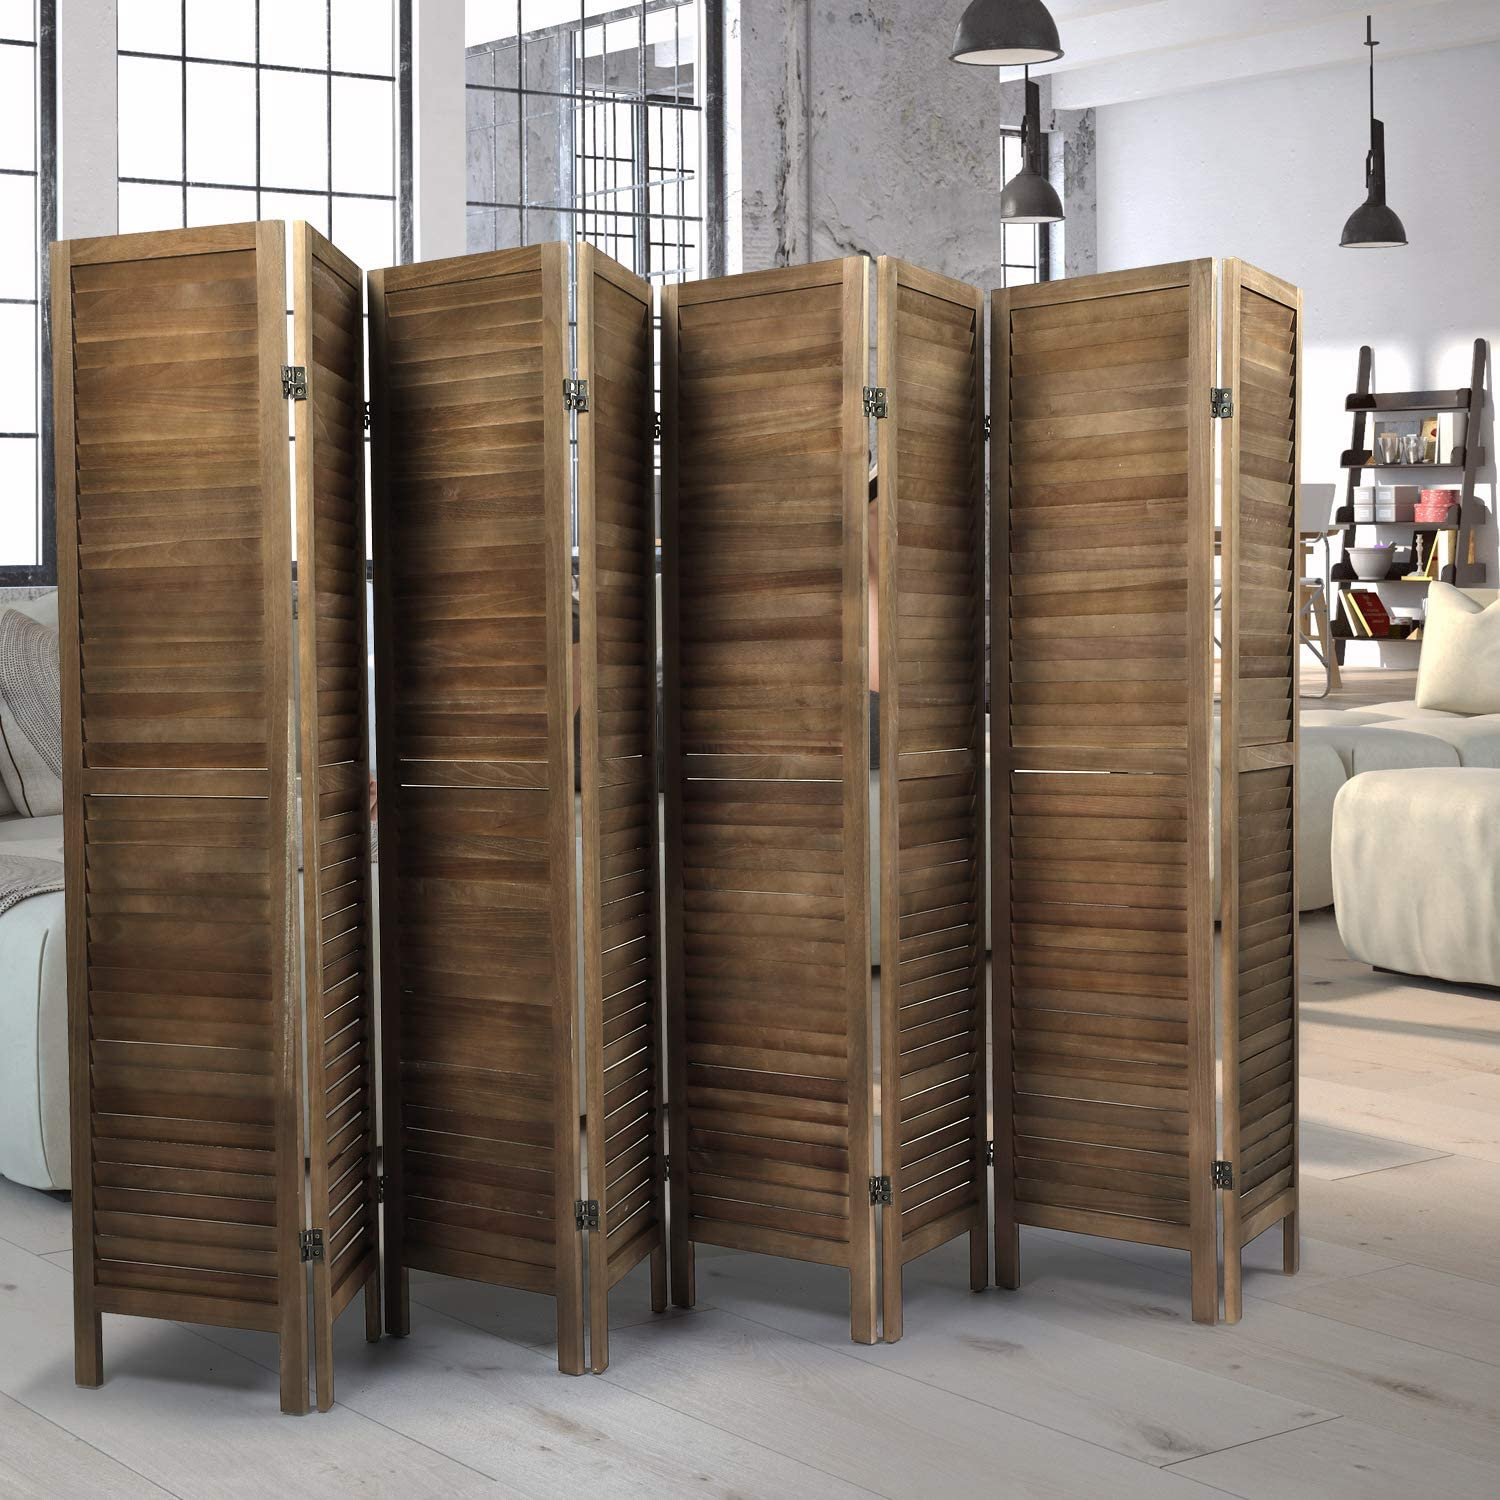 JAXSUNNY 8 Panel Sycamore Year-end gift Wood Room Wall Challenge the lowest price of Japan ☆ Freestanding Di Divider